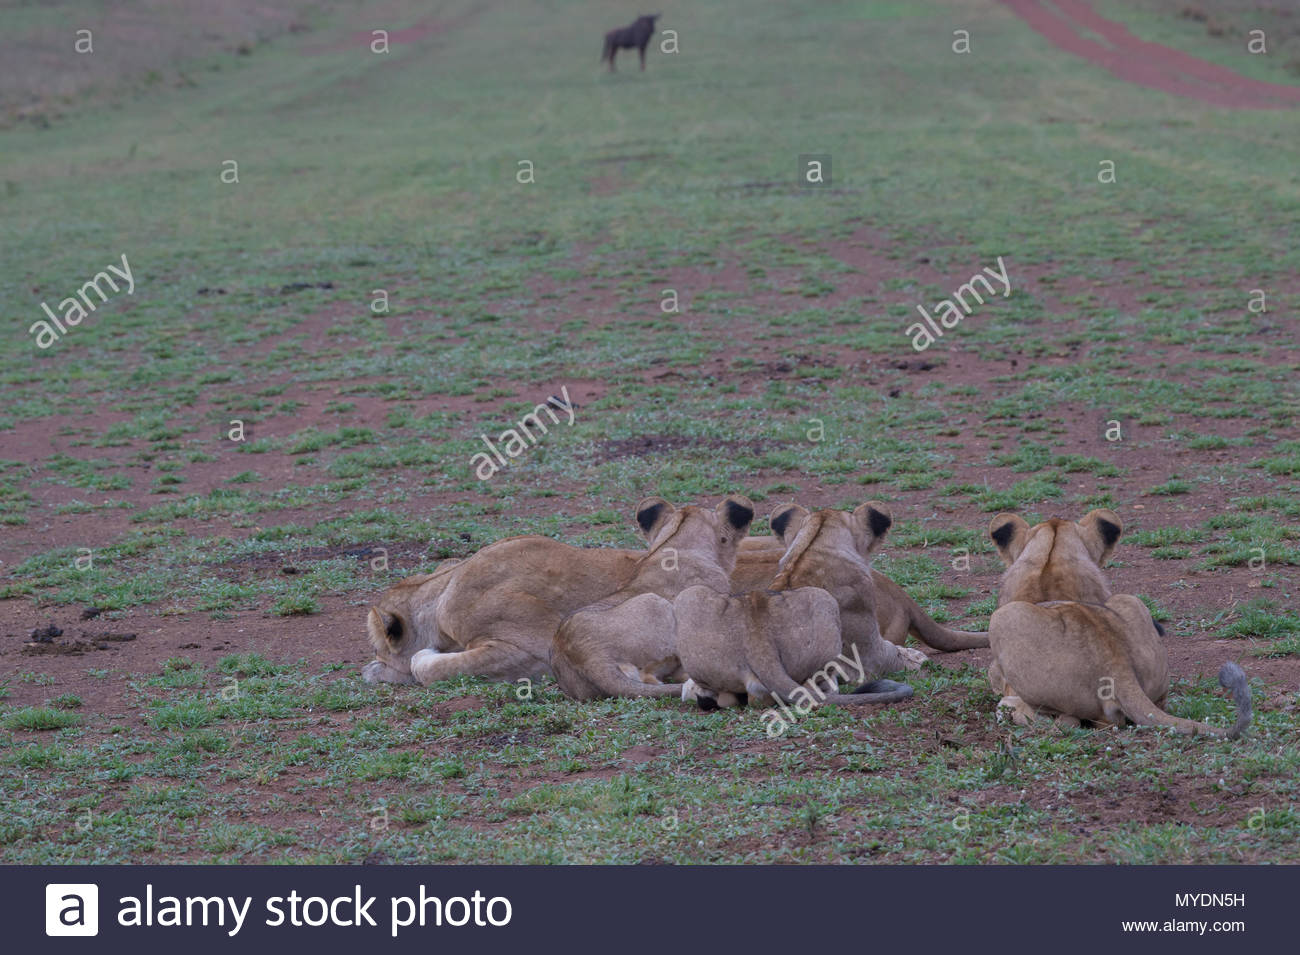 Lions crouch in wait for wildebeest. - Stock Image